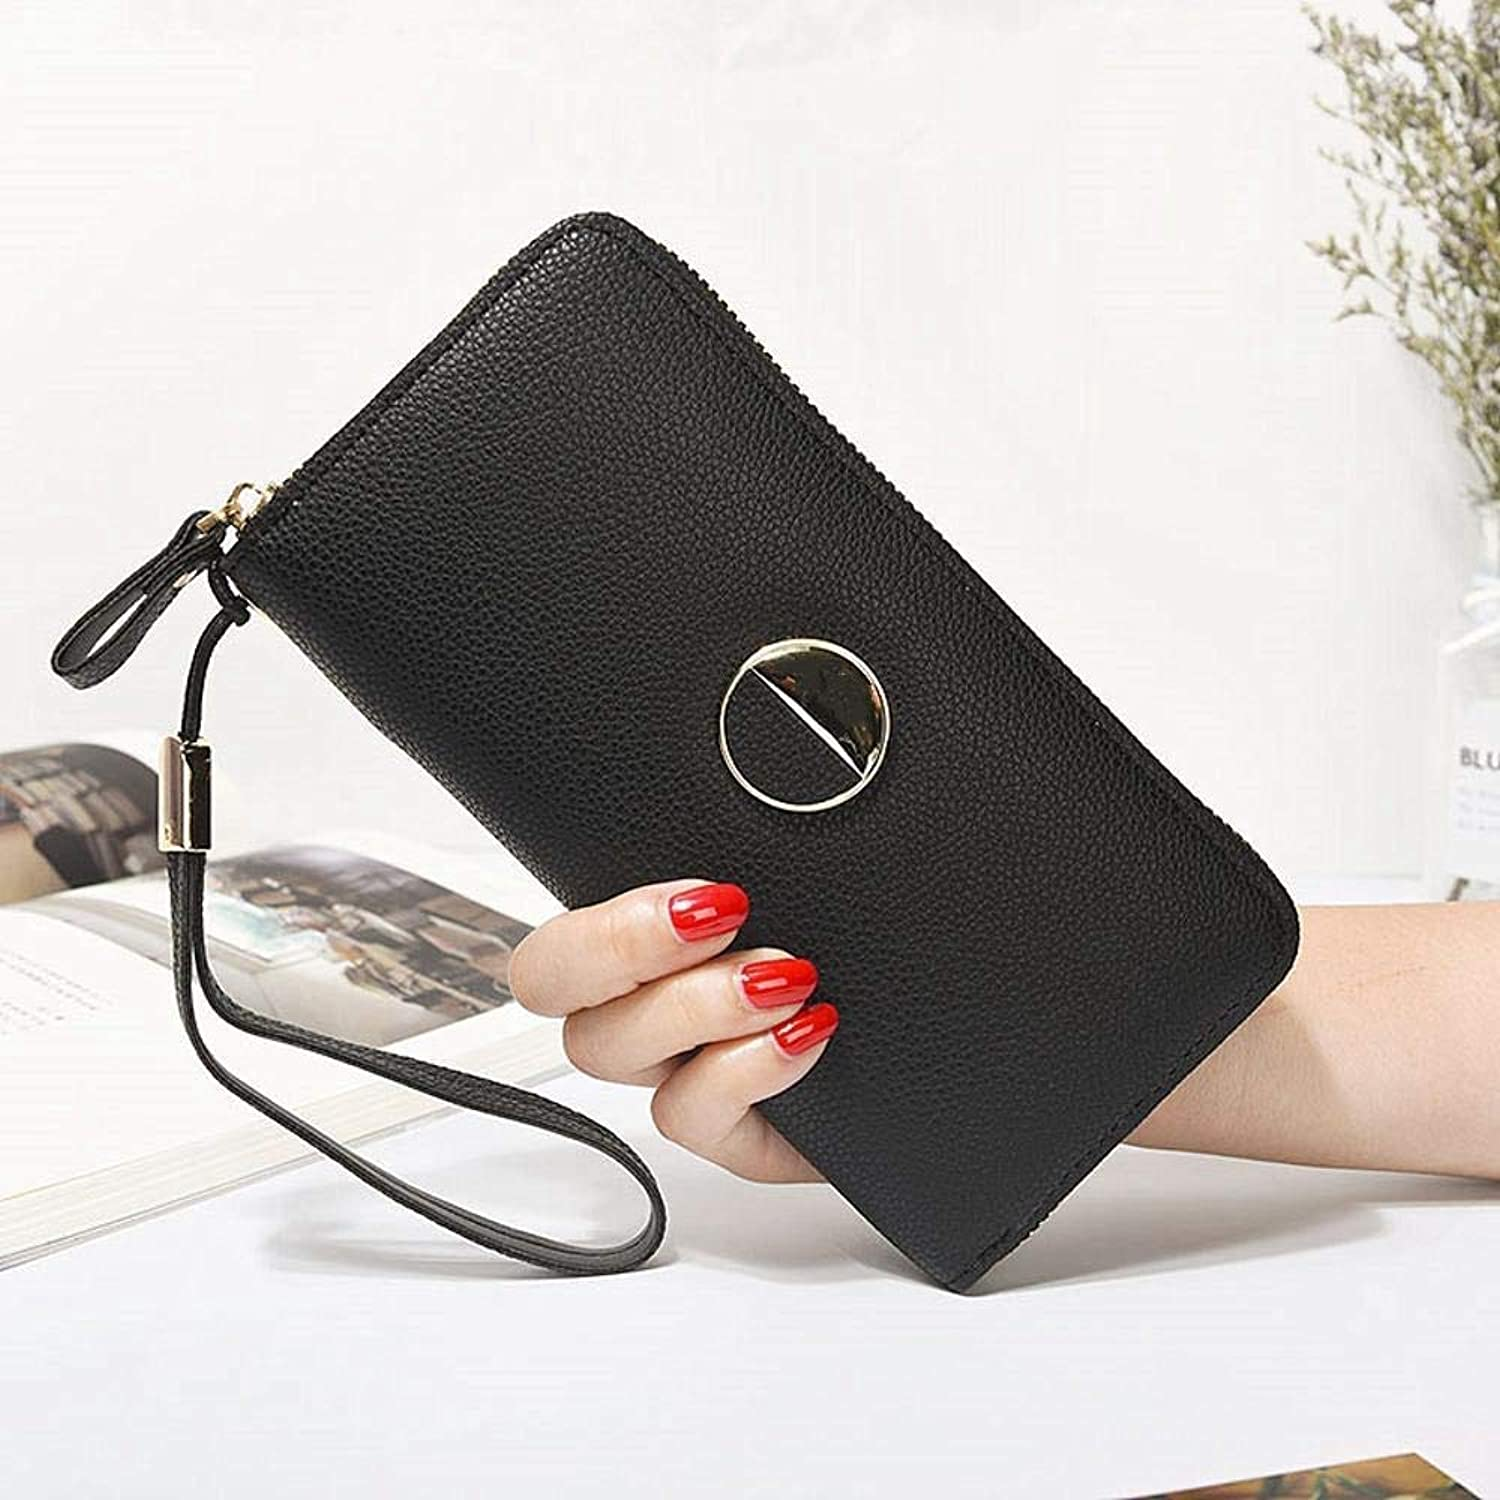 Girls Purse Women's Wallet,Women's Large Wallet Zipper Wallet Bill Clamp Multifunctional Hand Bag PU Leather (color   E)